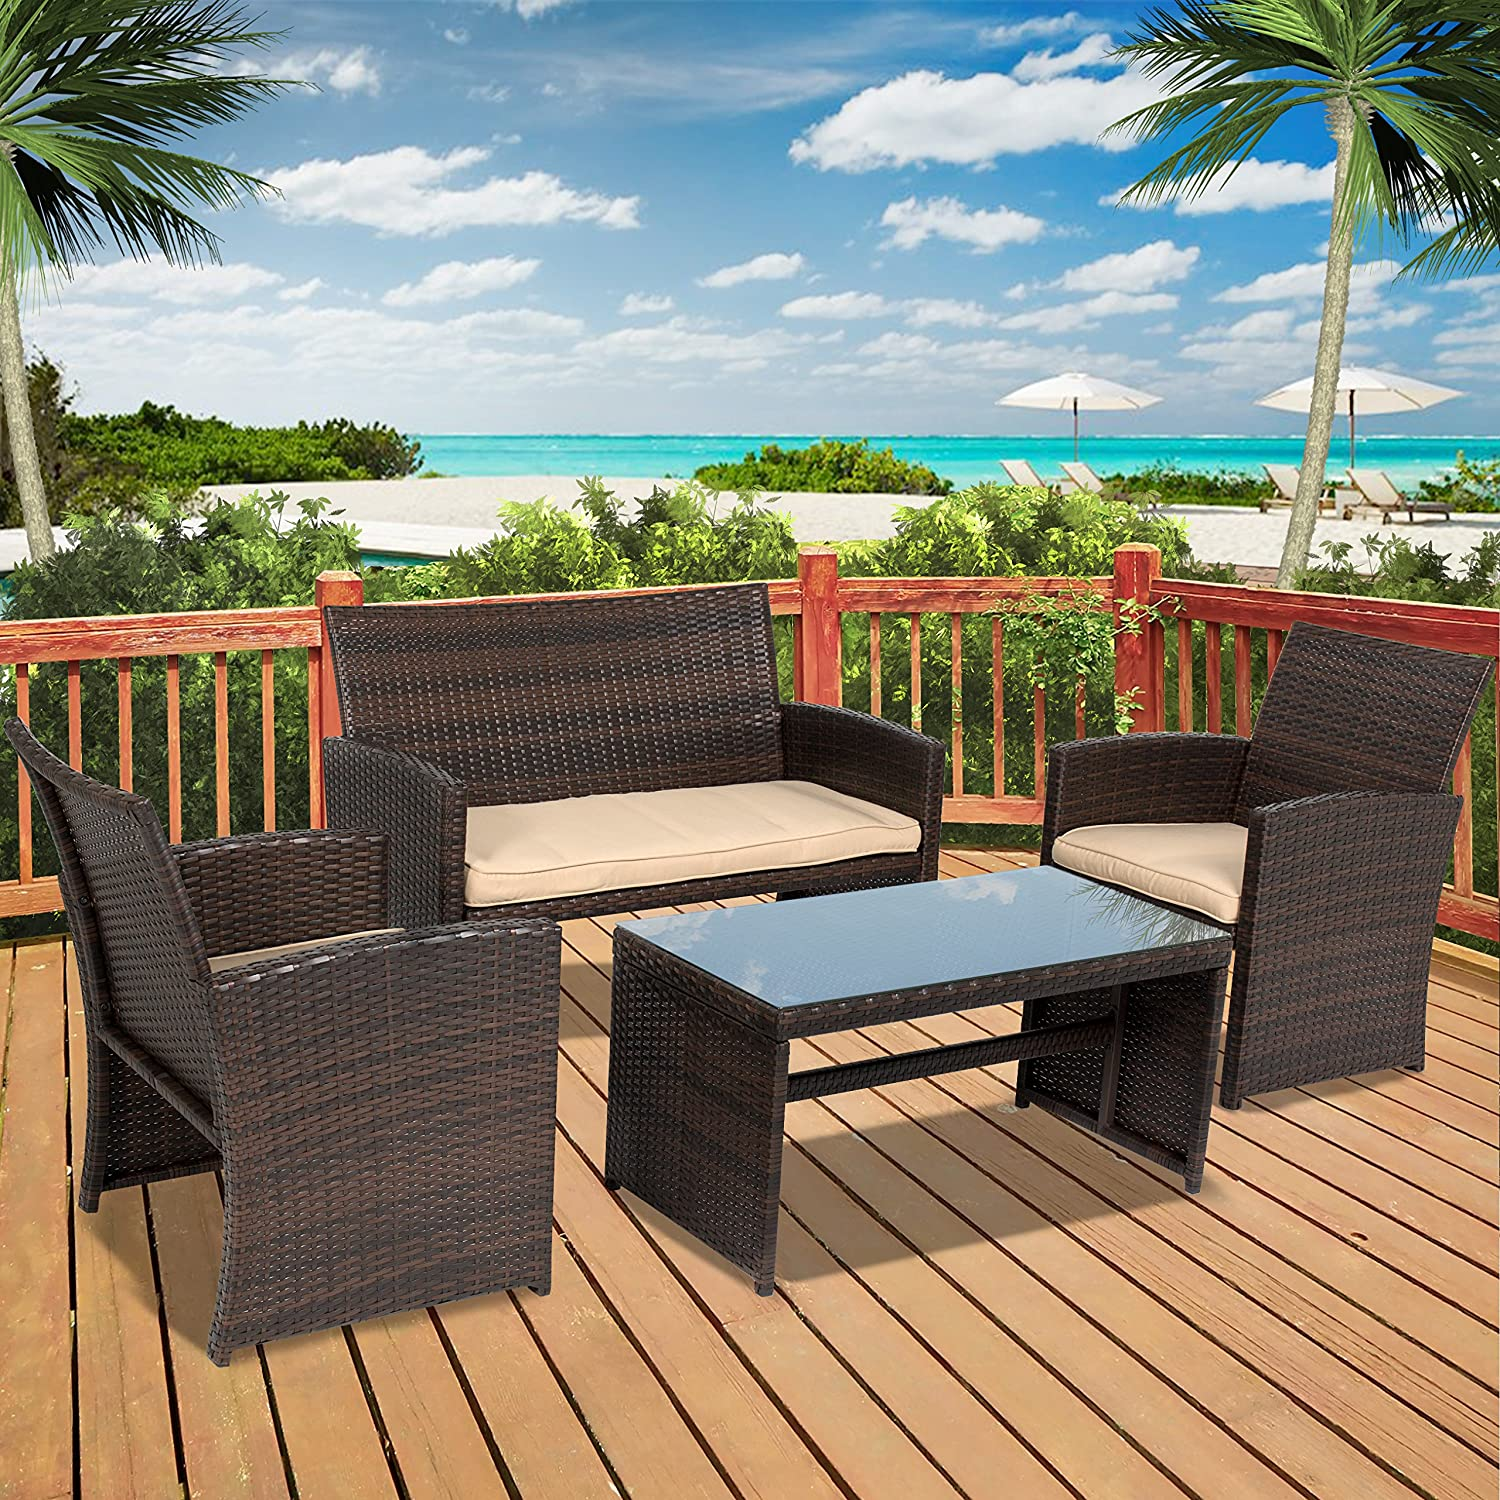 Best Choice Products 4pc Wicker Outdoor Patio Furniture Set Custioned Seats - Shop Amazon.com Patio Furniture Sets